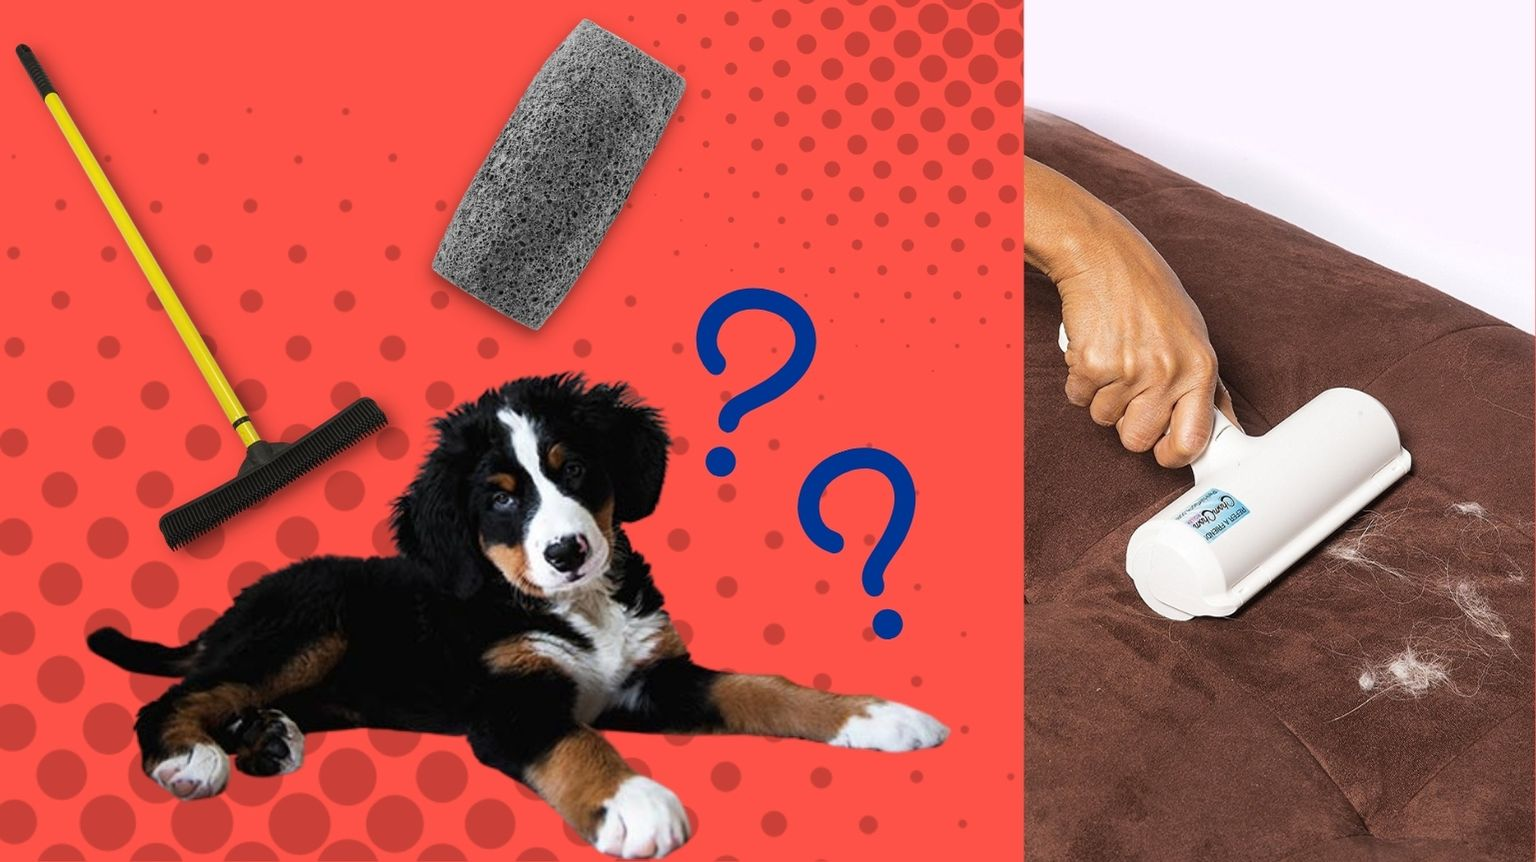 Newfoundland next to pet hair removers